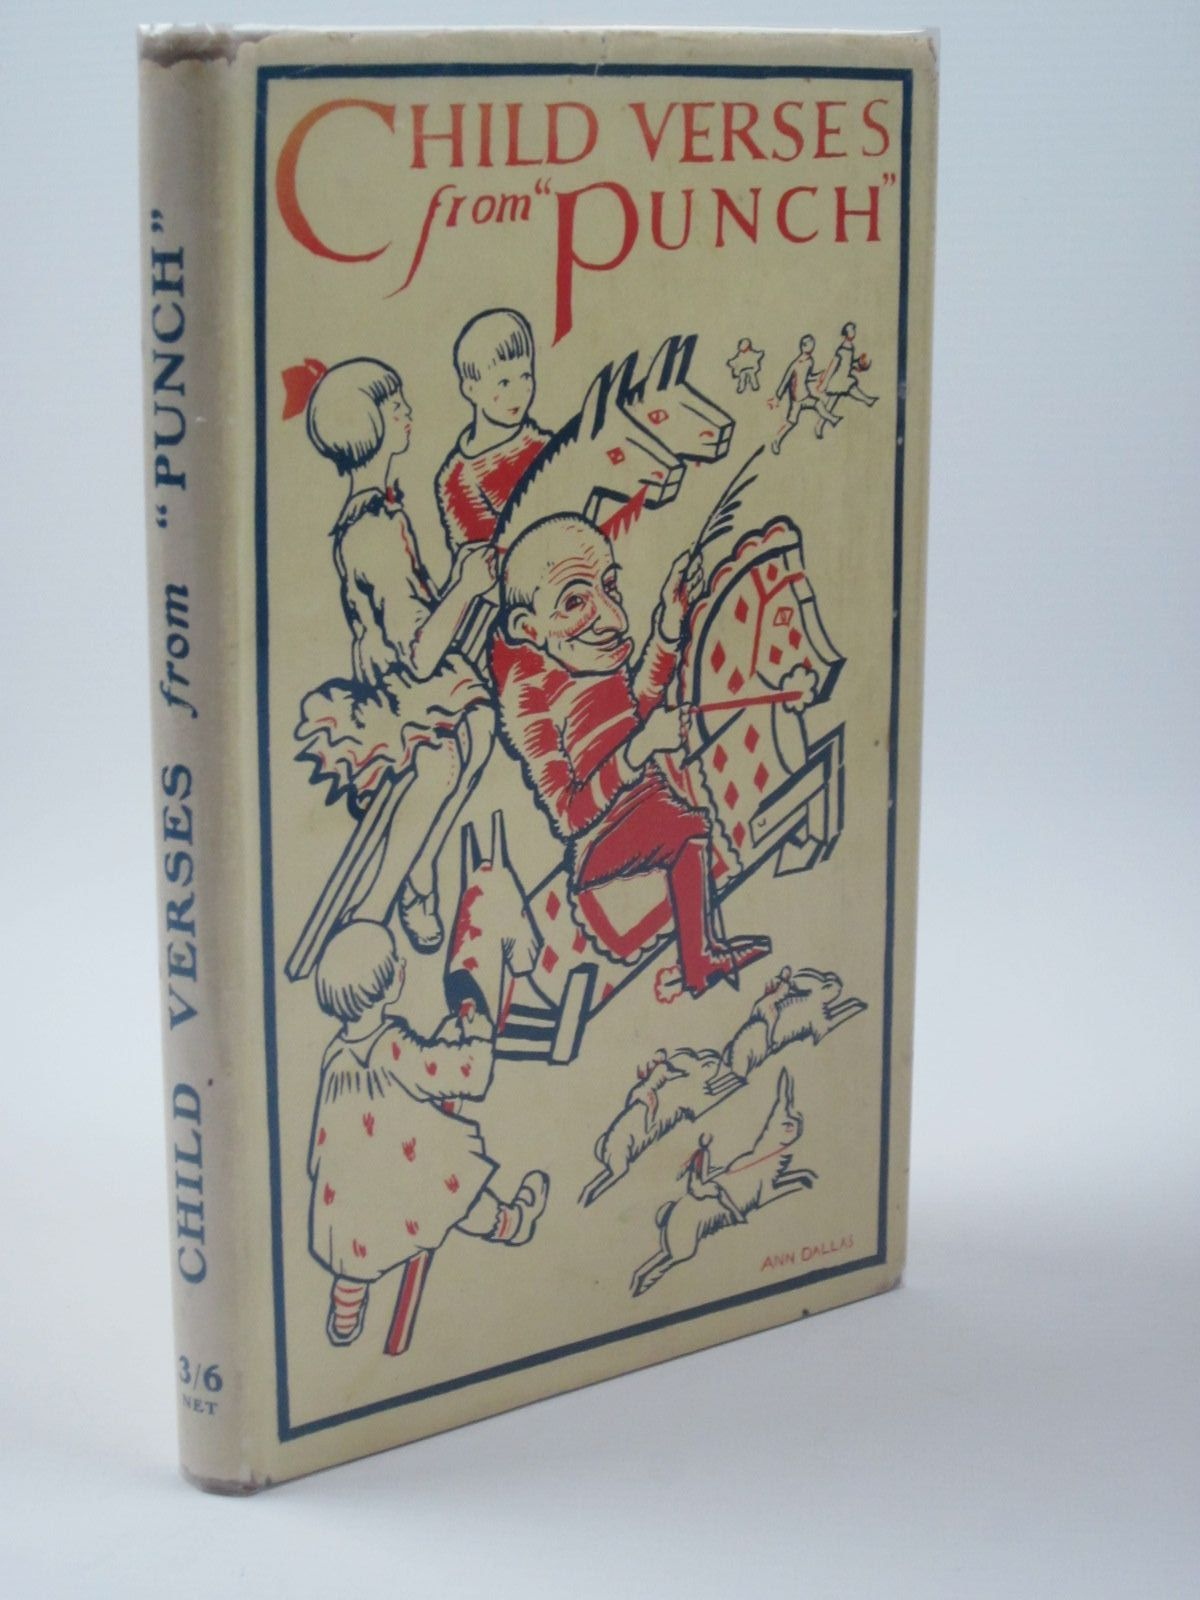 Photo of CHILD VERSES FROM 'PUNCH' written by Greenland, George Farjeon, Eleanor Talbot, Ethel et al,  illustrated by Chase, Phyllis published by J. Saville & Co. Ltd. (STOCK CODE: 1501308)  for sale by Stella & Rose's Books